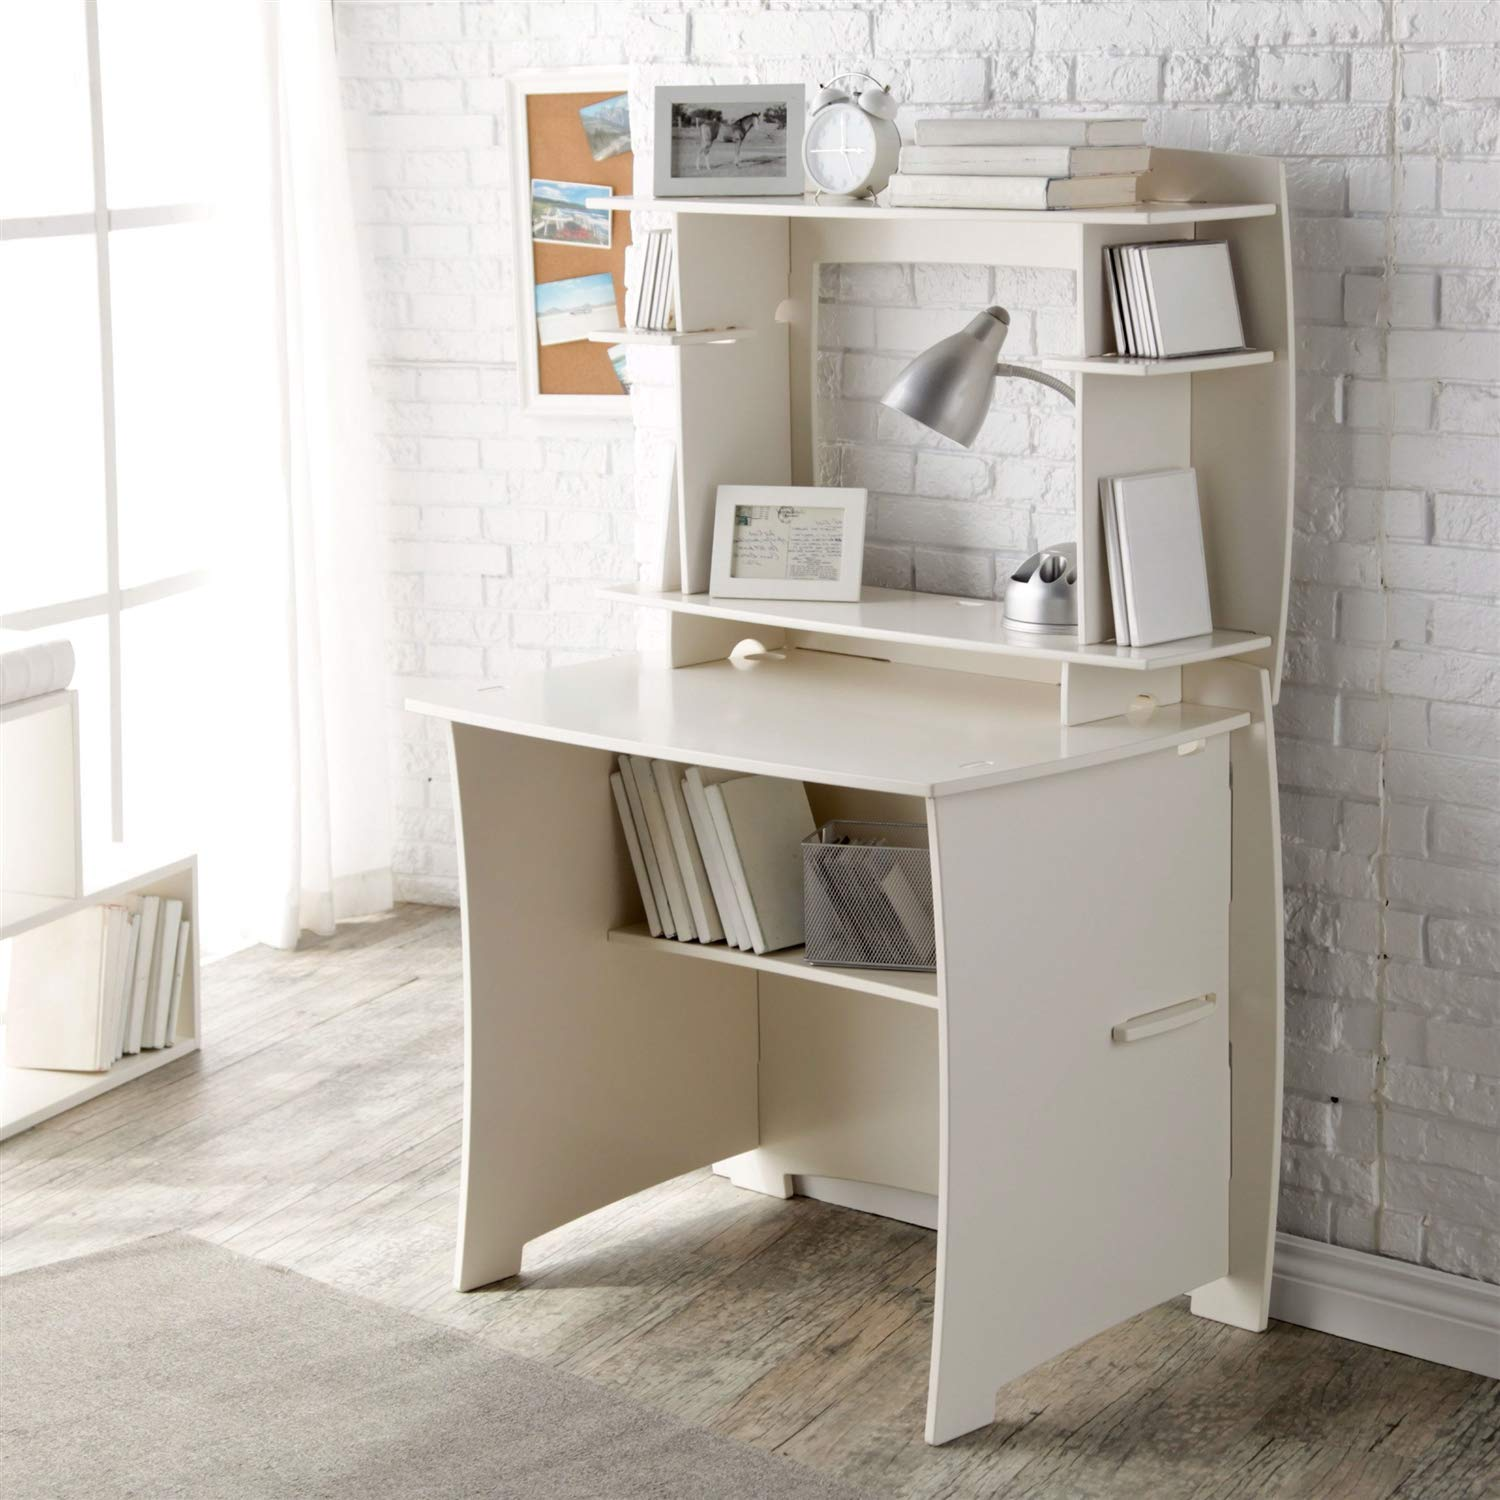 Trustpurchase White Home Office Computer/Writing Desk with Hutch, Comes Complete w/A 36-inch Straight Desk & Matching 36-inch Hutch, Offering Plenty of Storage for A Kid's Room, College Dorm Room